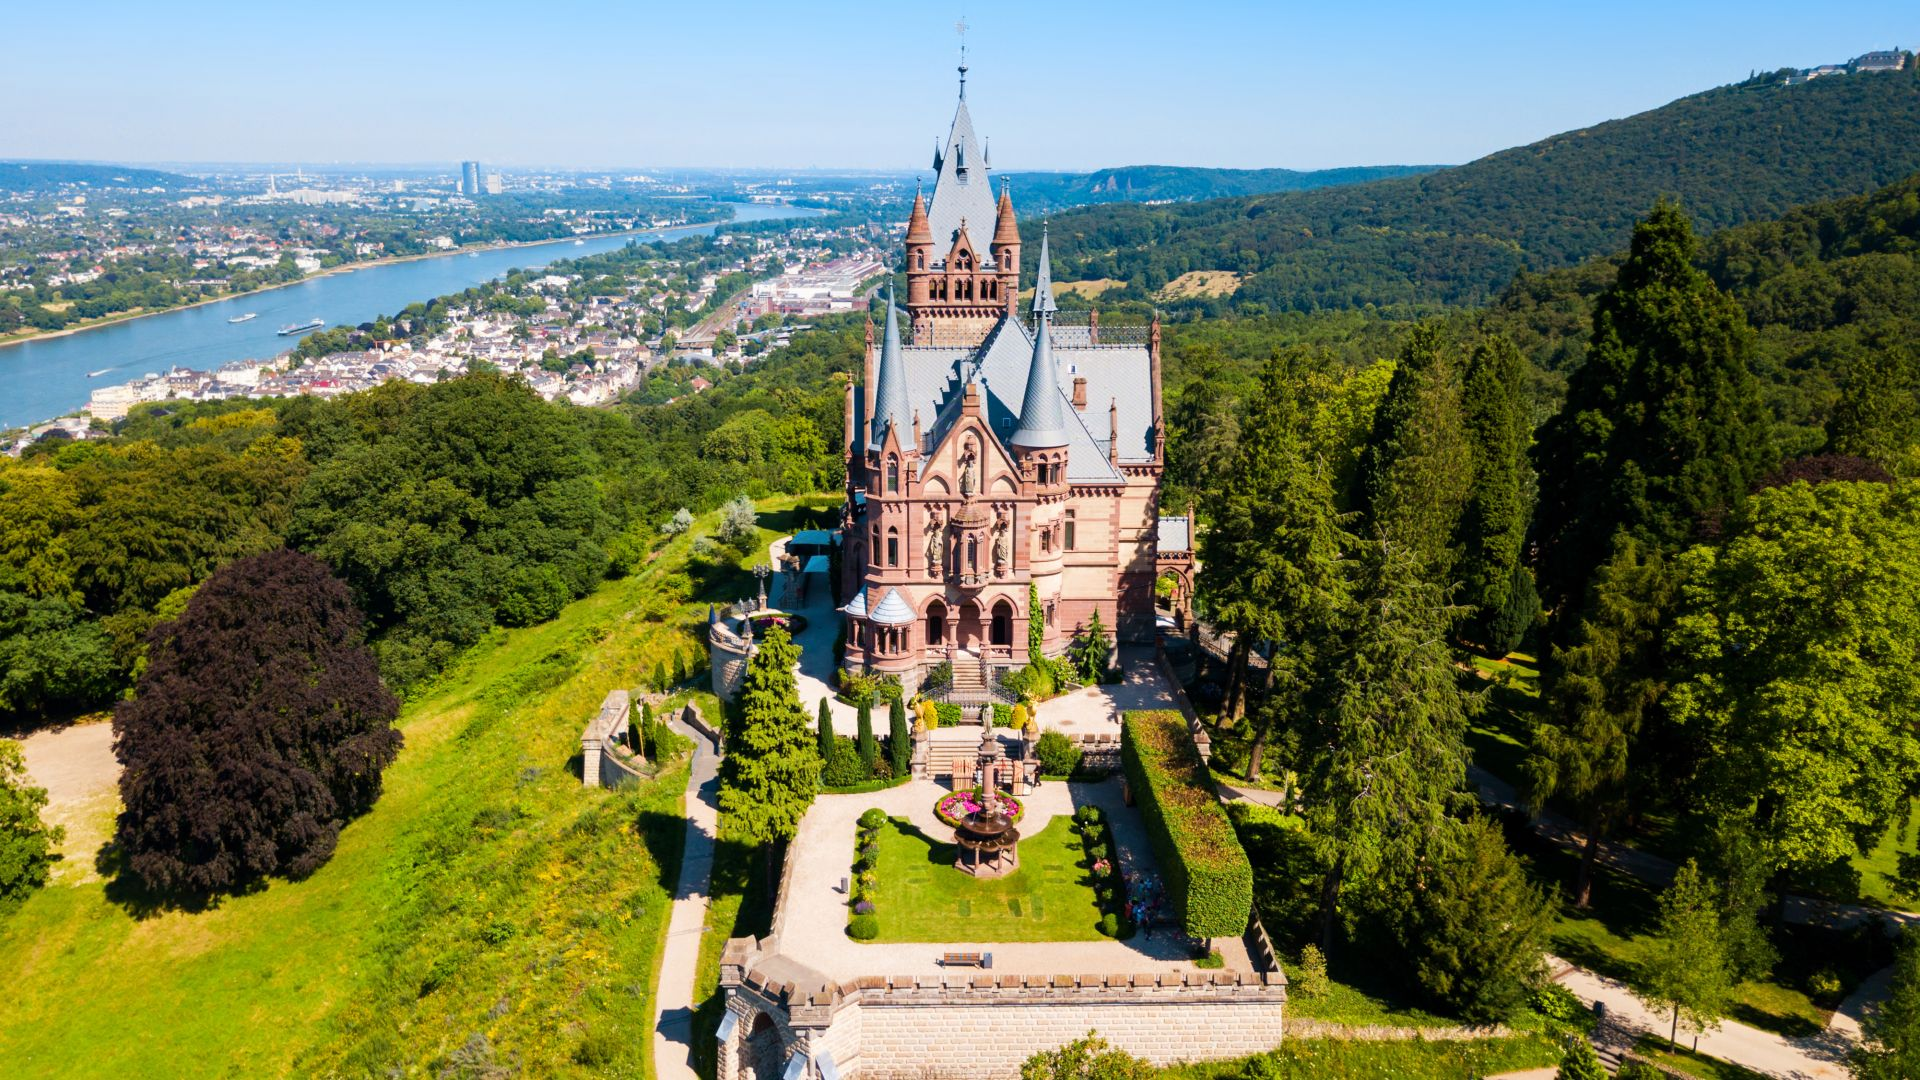 Konigswinter: Drachenburg Castle on the Rhine